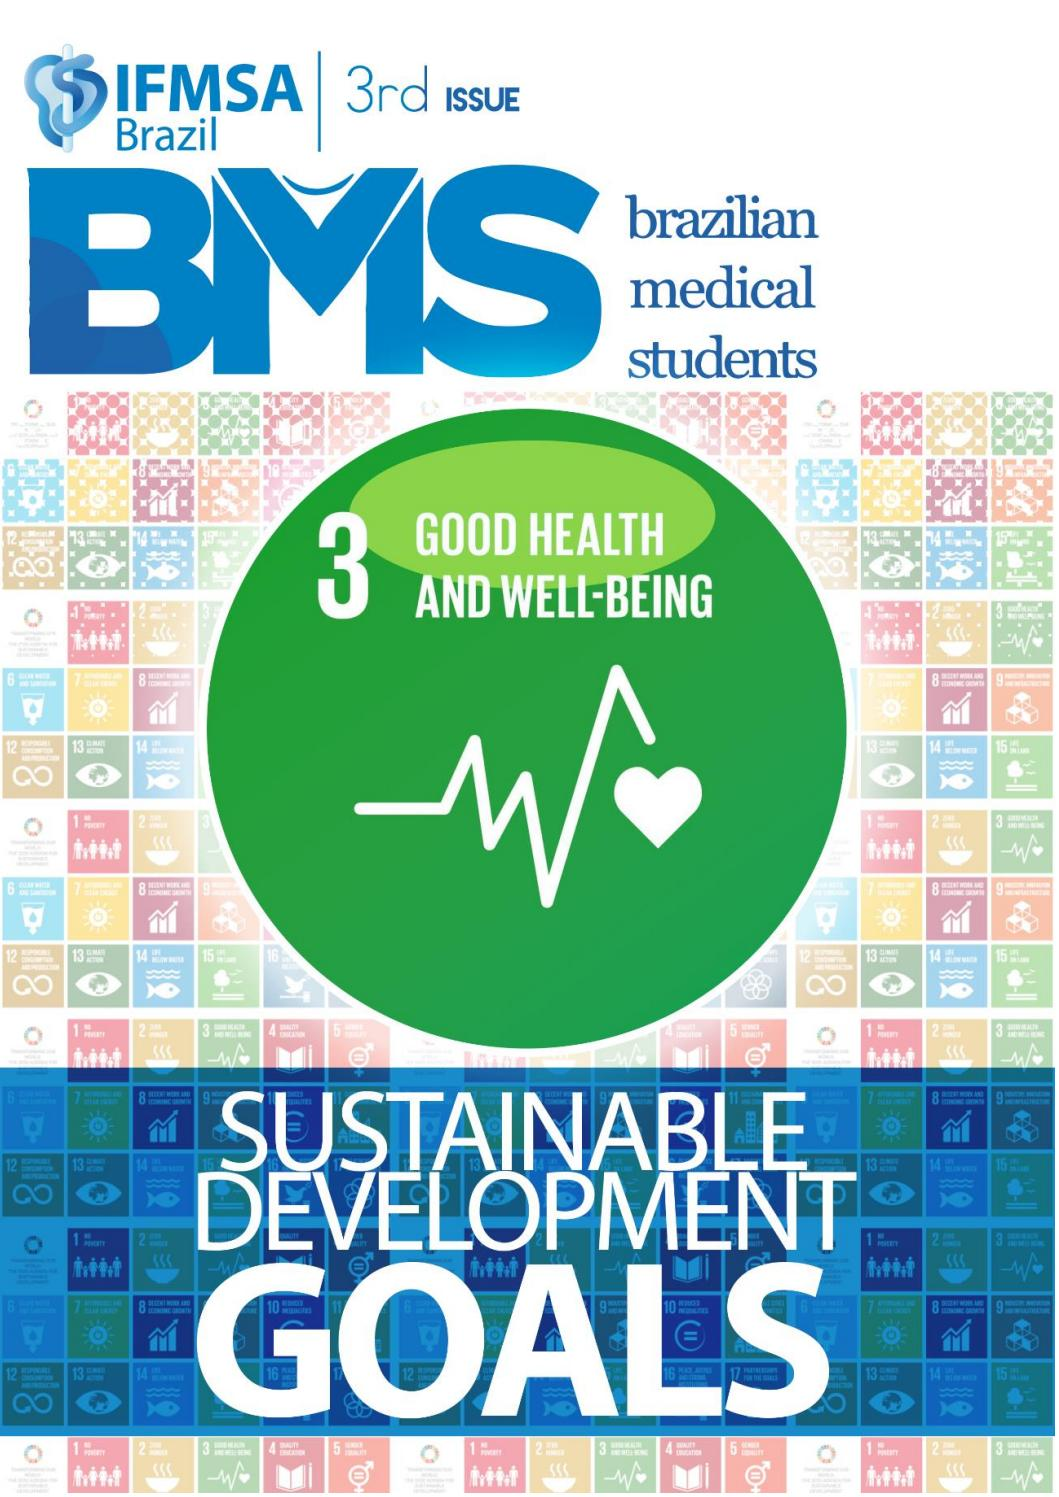 Brazilian medical students bms 3rd issue by brazilian medical brazilian medical students bms 3rd issue by brazilian medical student bms ifmsa brazil issuu fandeluxe Choice Image